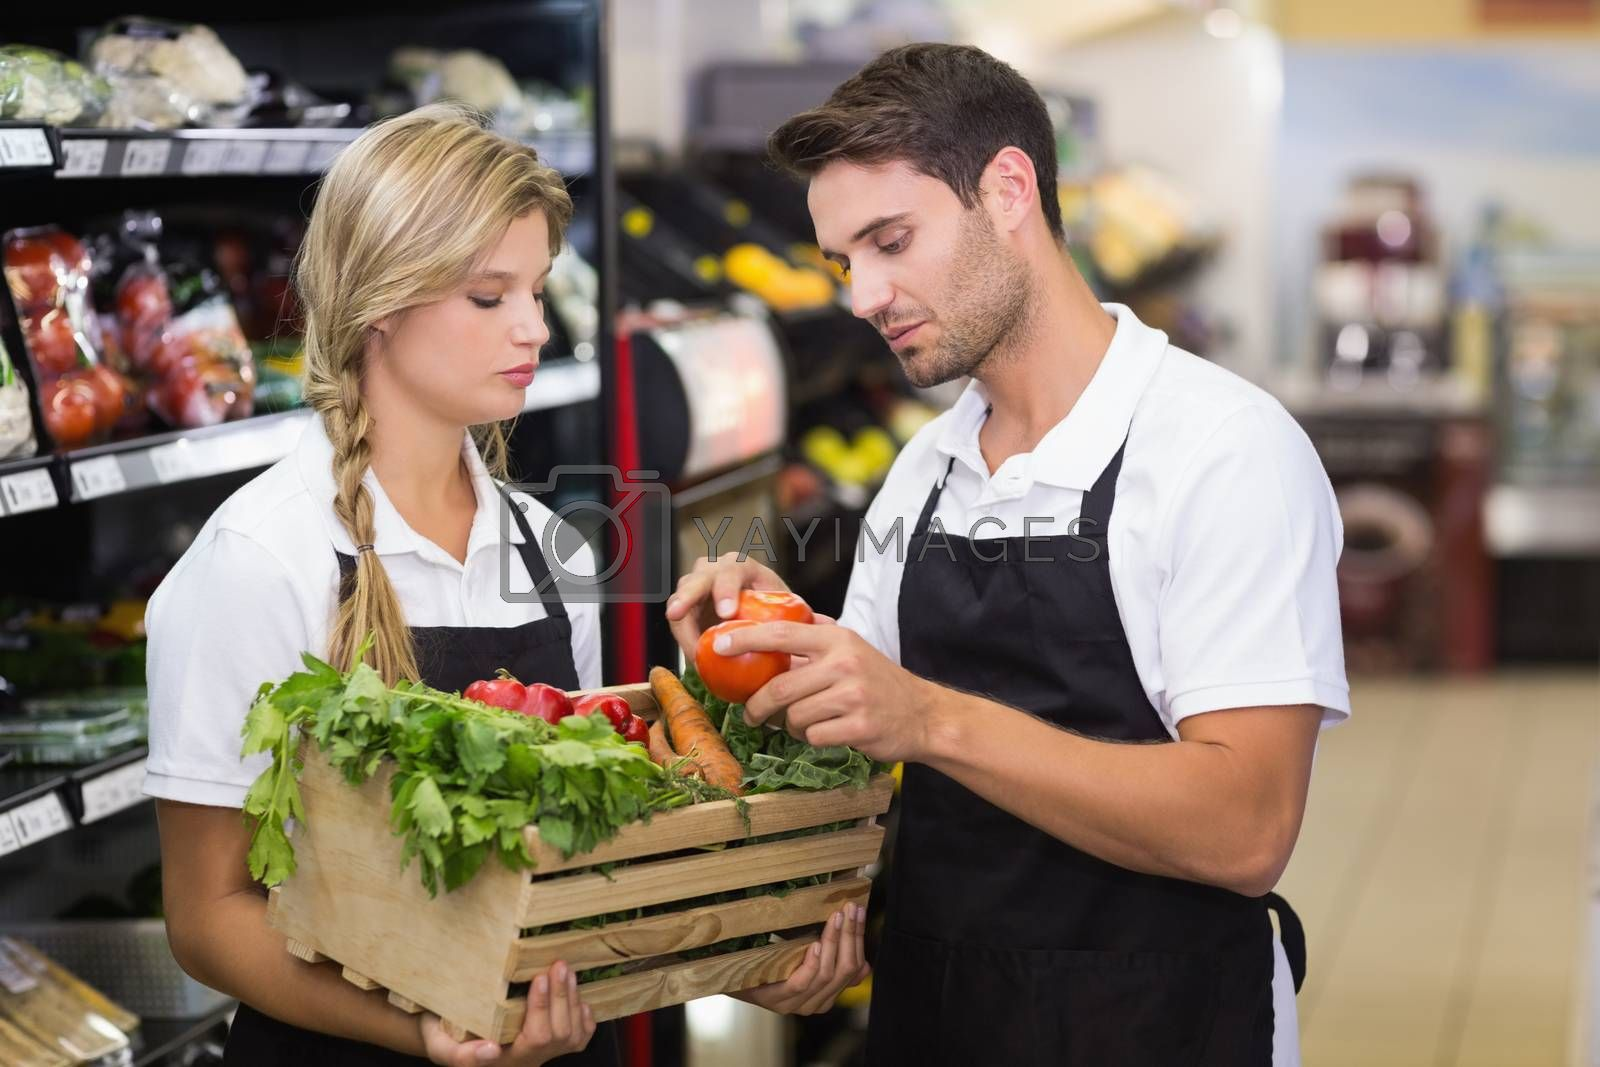 Royalty free image of Two colleagues holding a box with fresh vegetables  by Wavebreakmedia